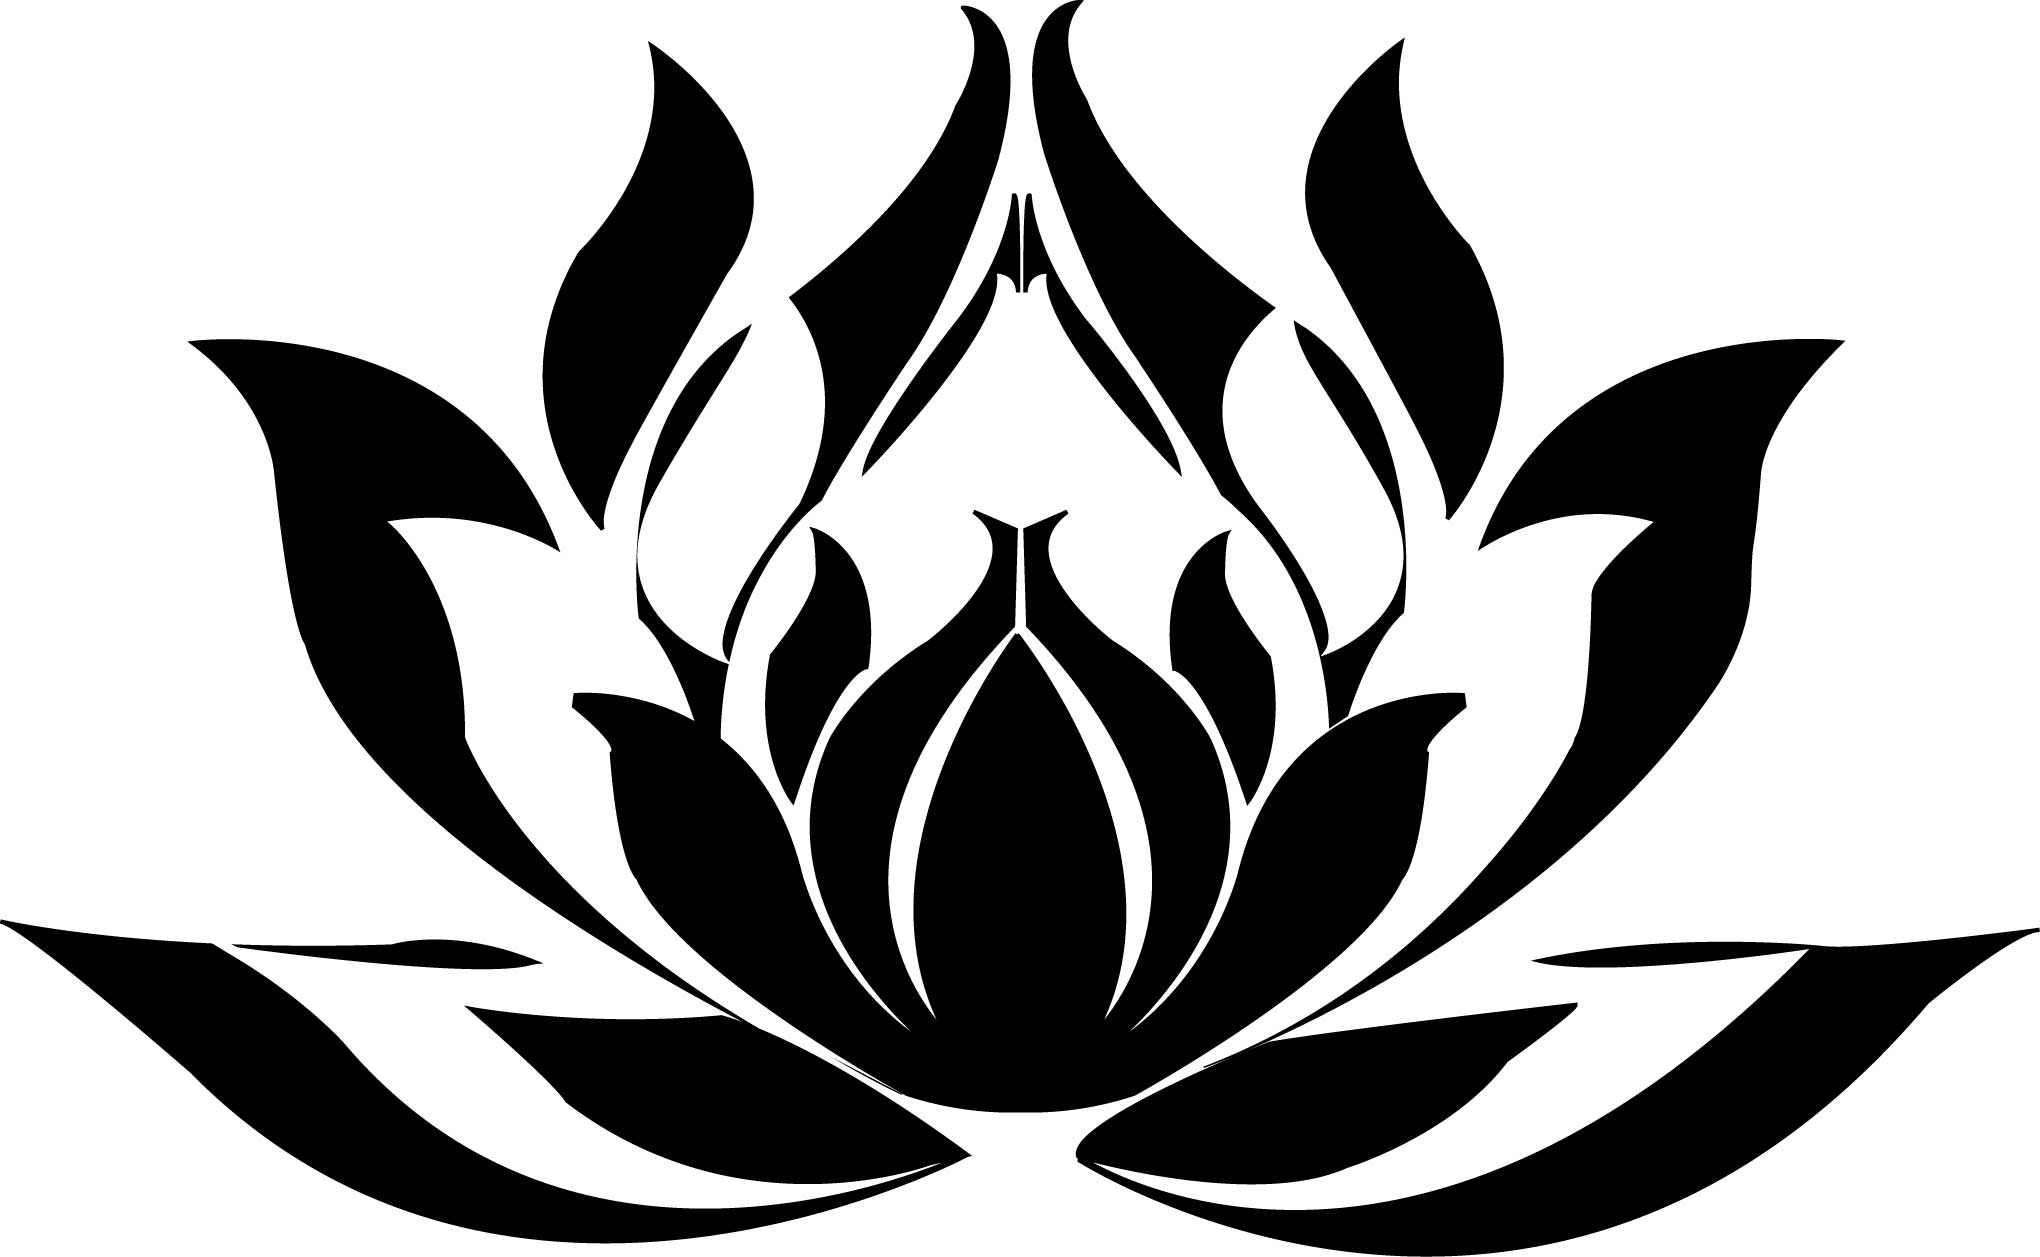 Tribal lotus flower lektonfo tribal lotus flower izmirmasajfo